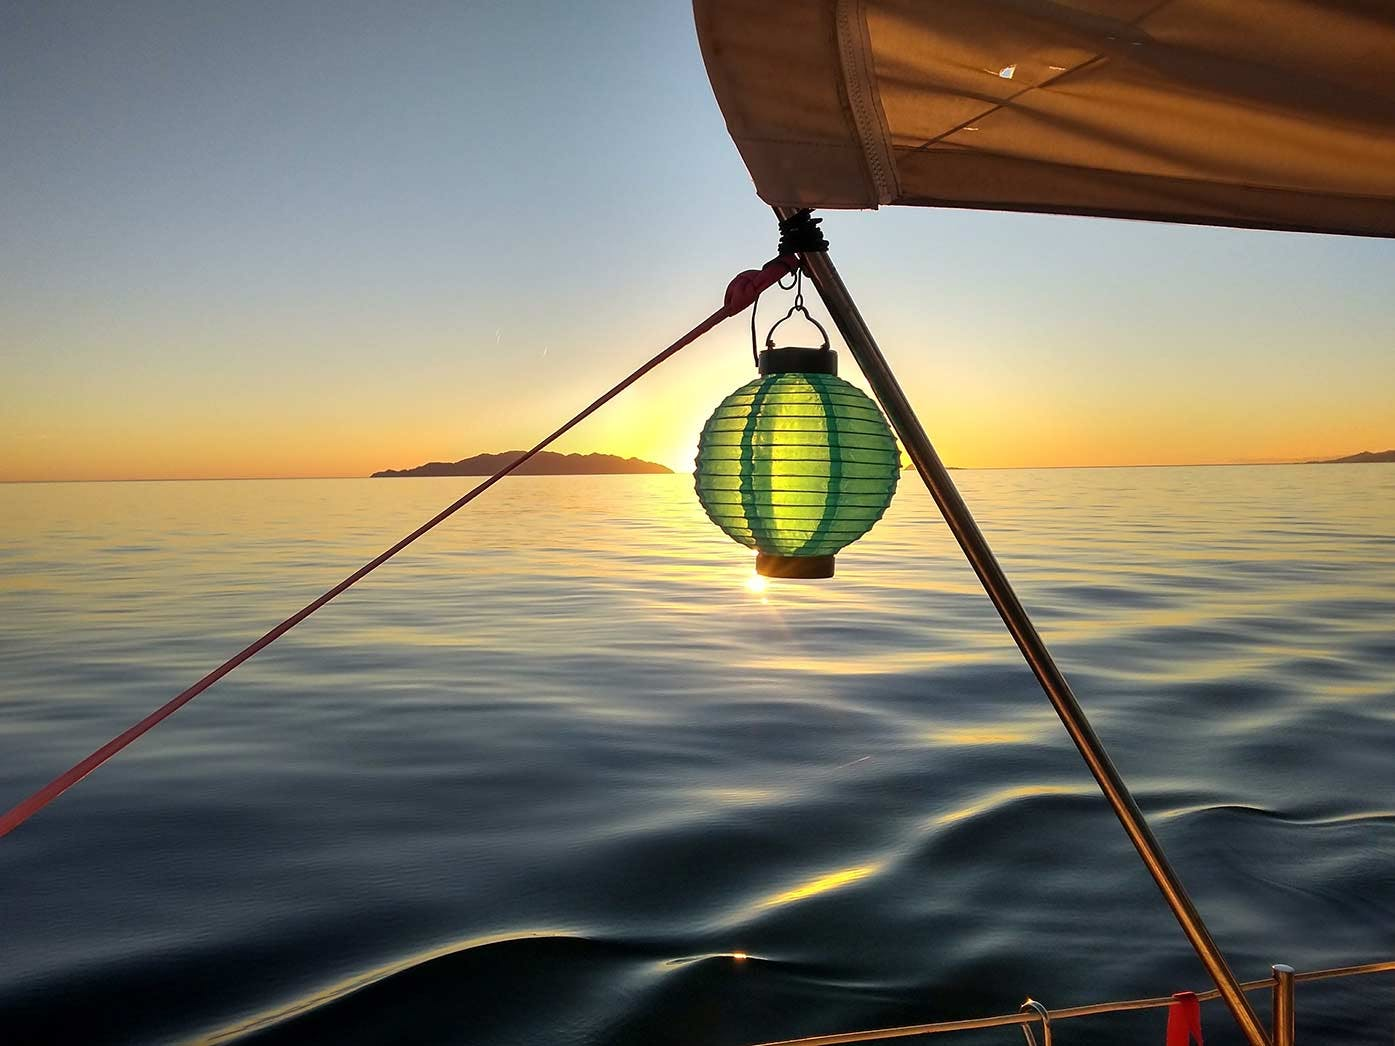 sleeping on a boat - image of sunset from boat